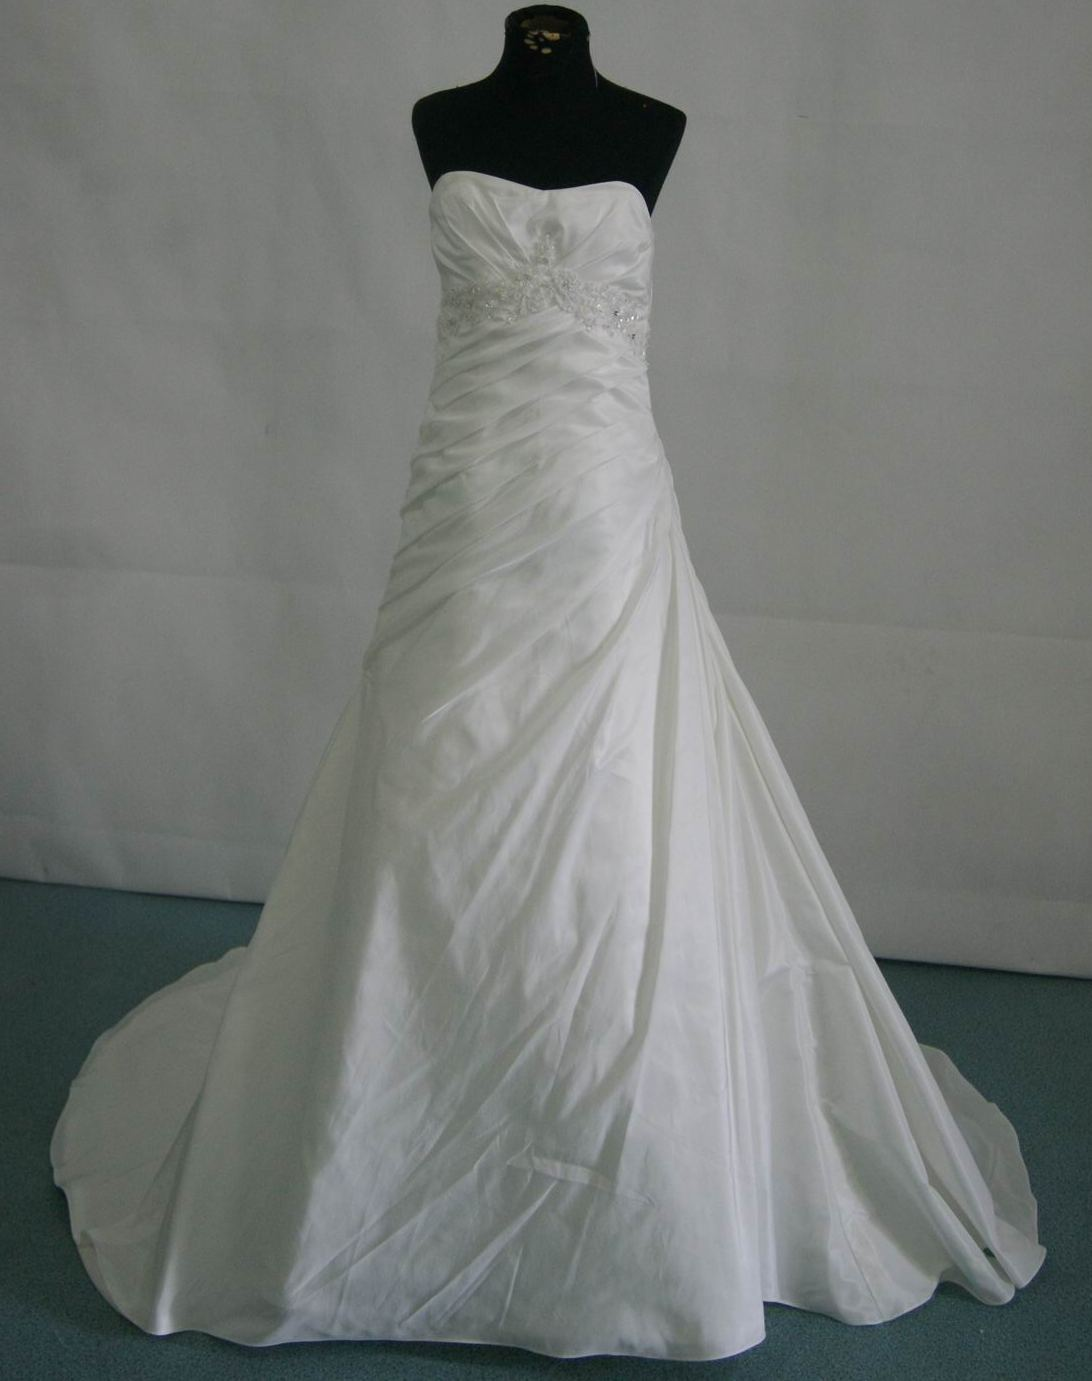 A-Line Strapless Empire Waist Pleated Long Satin Flower Girl Wedding Dress